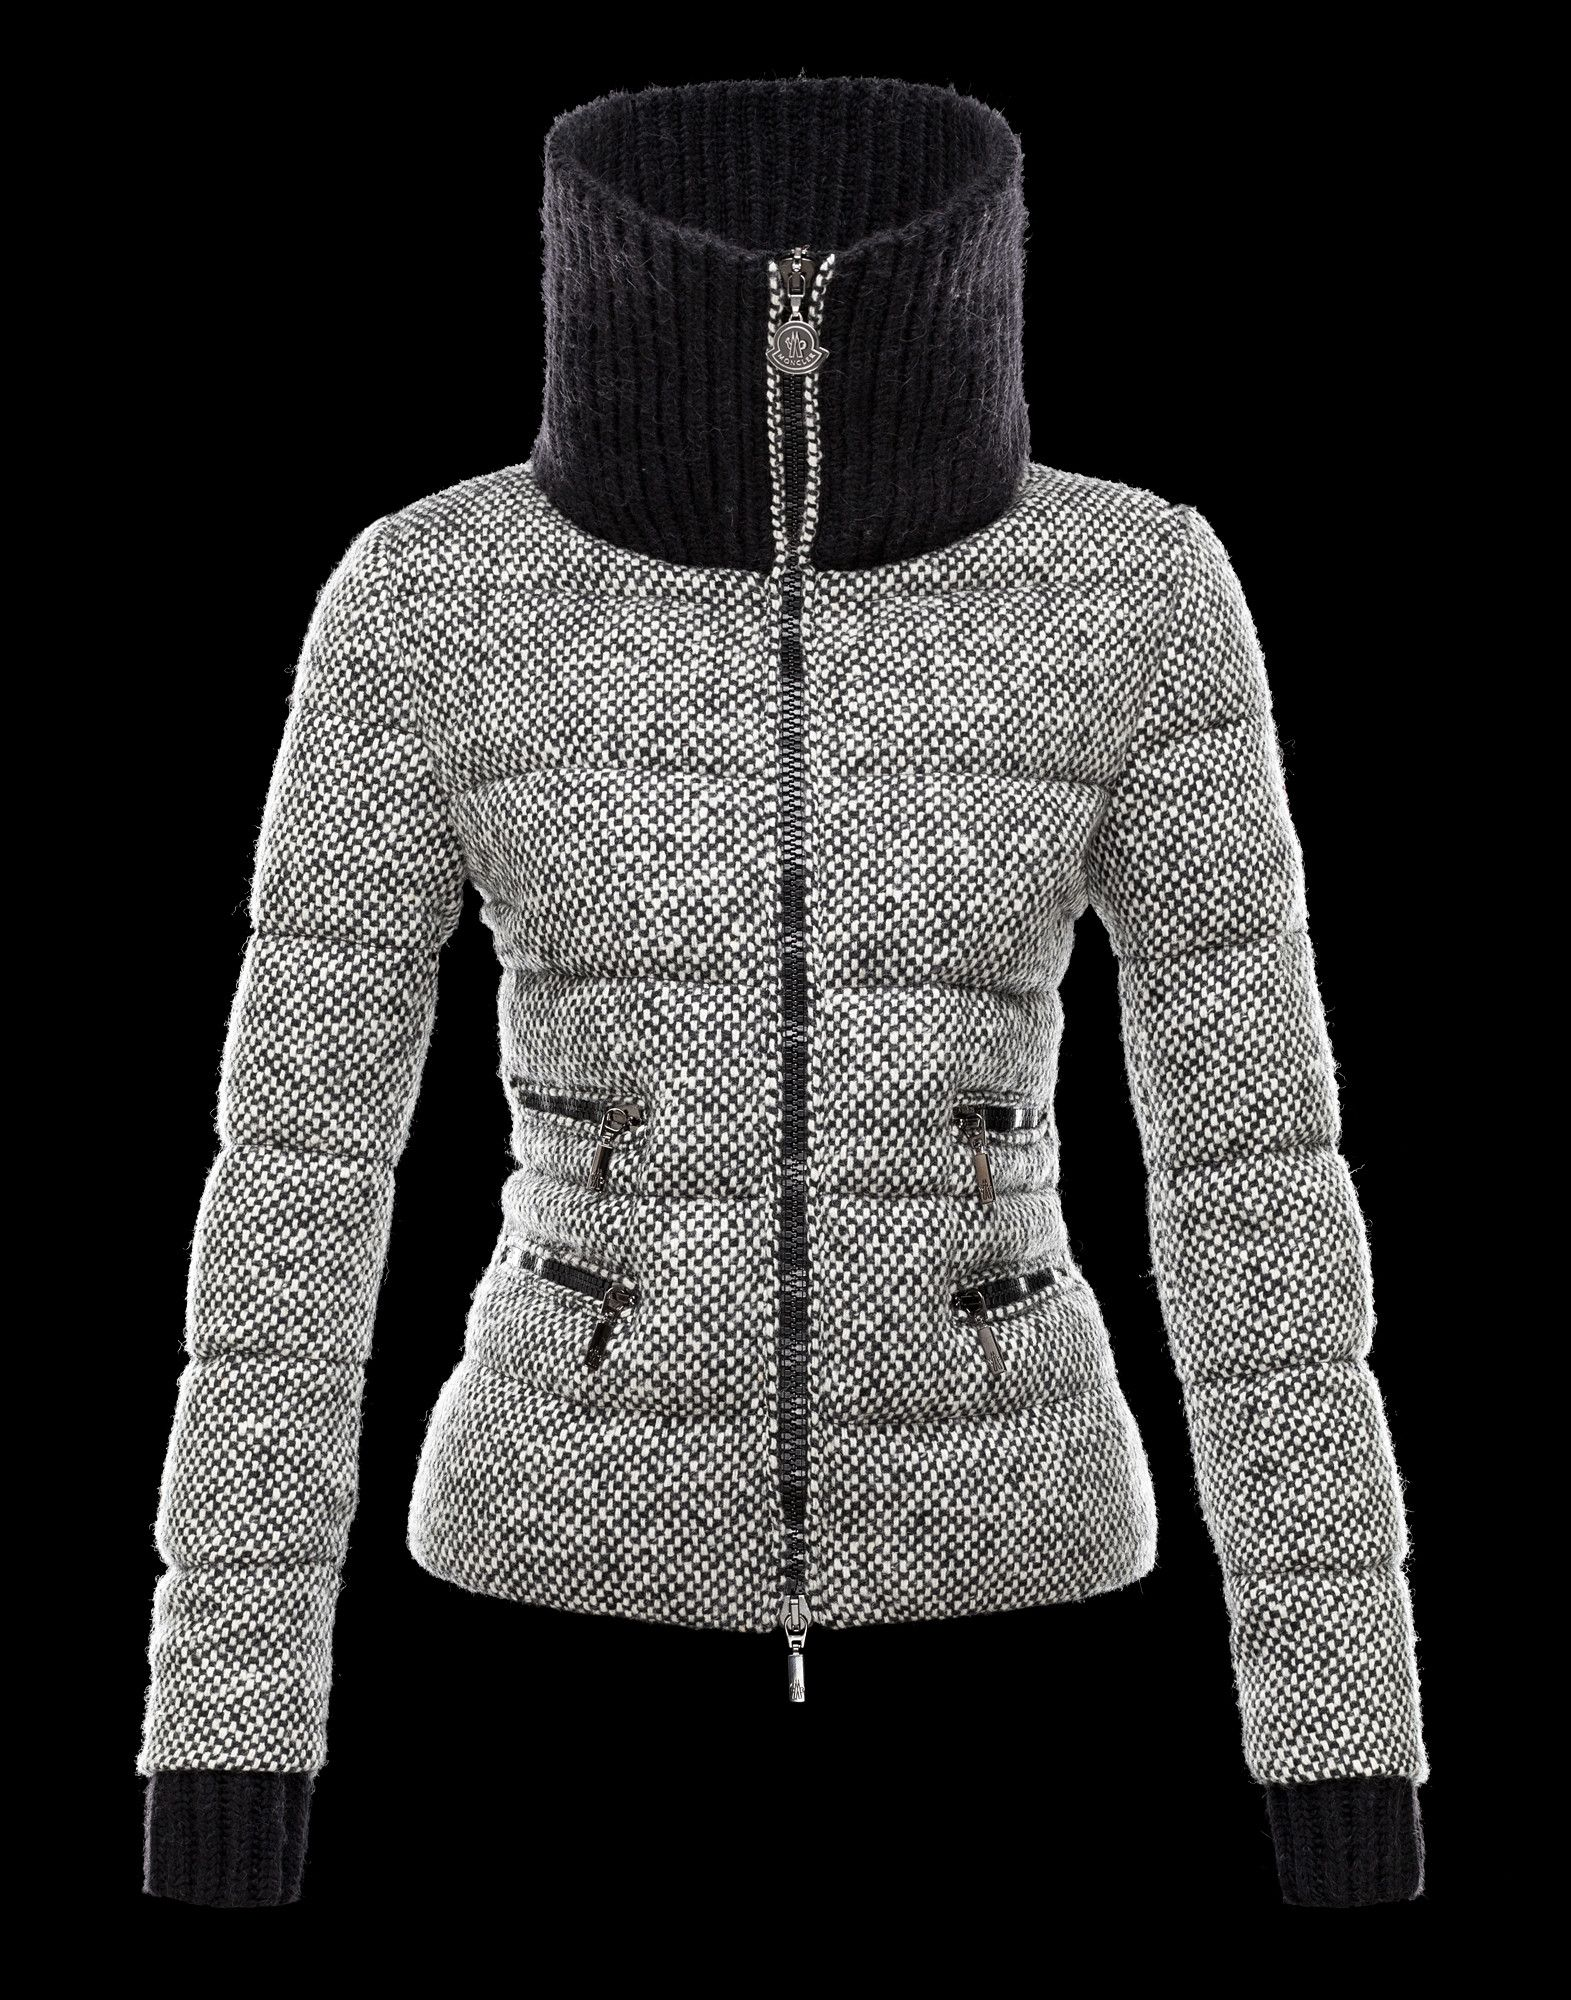 moncler99 on Moncler jacket, Jackets, Jackets for women